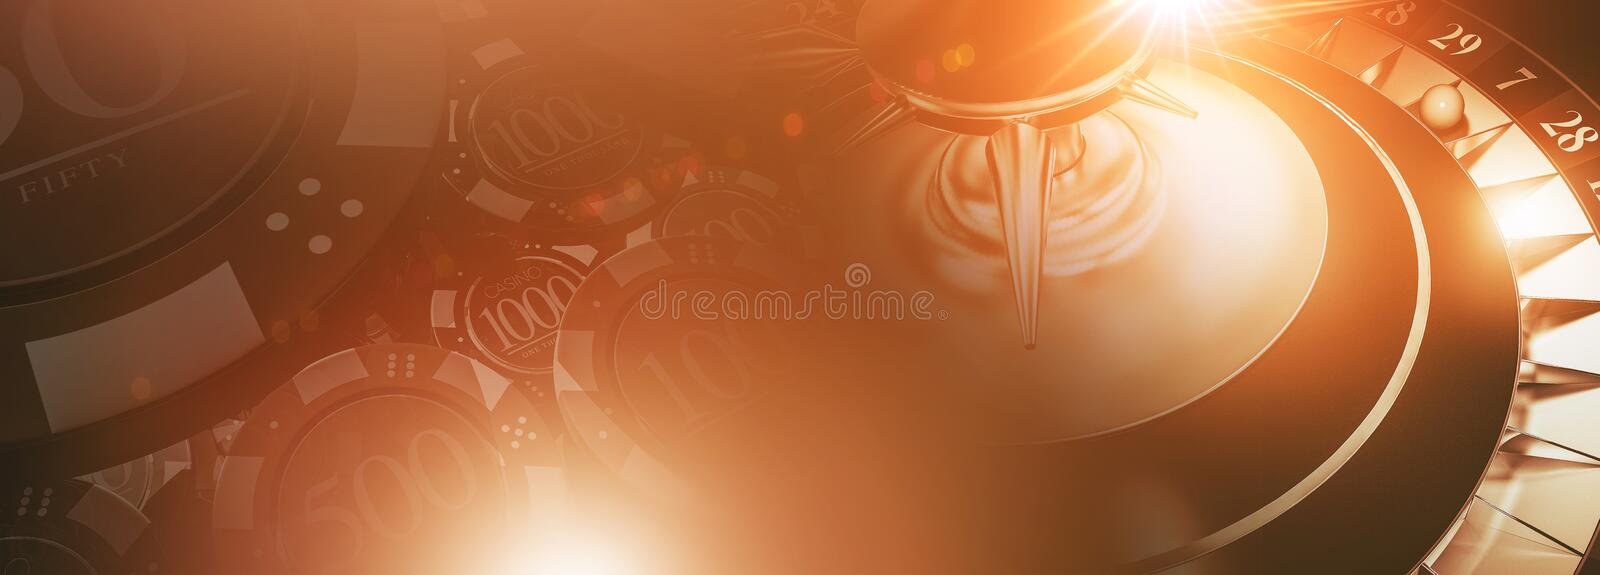 Roulette and Chips Banner royalty free illustration